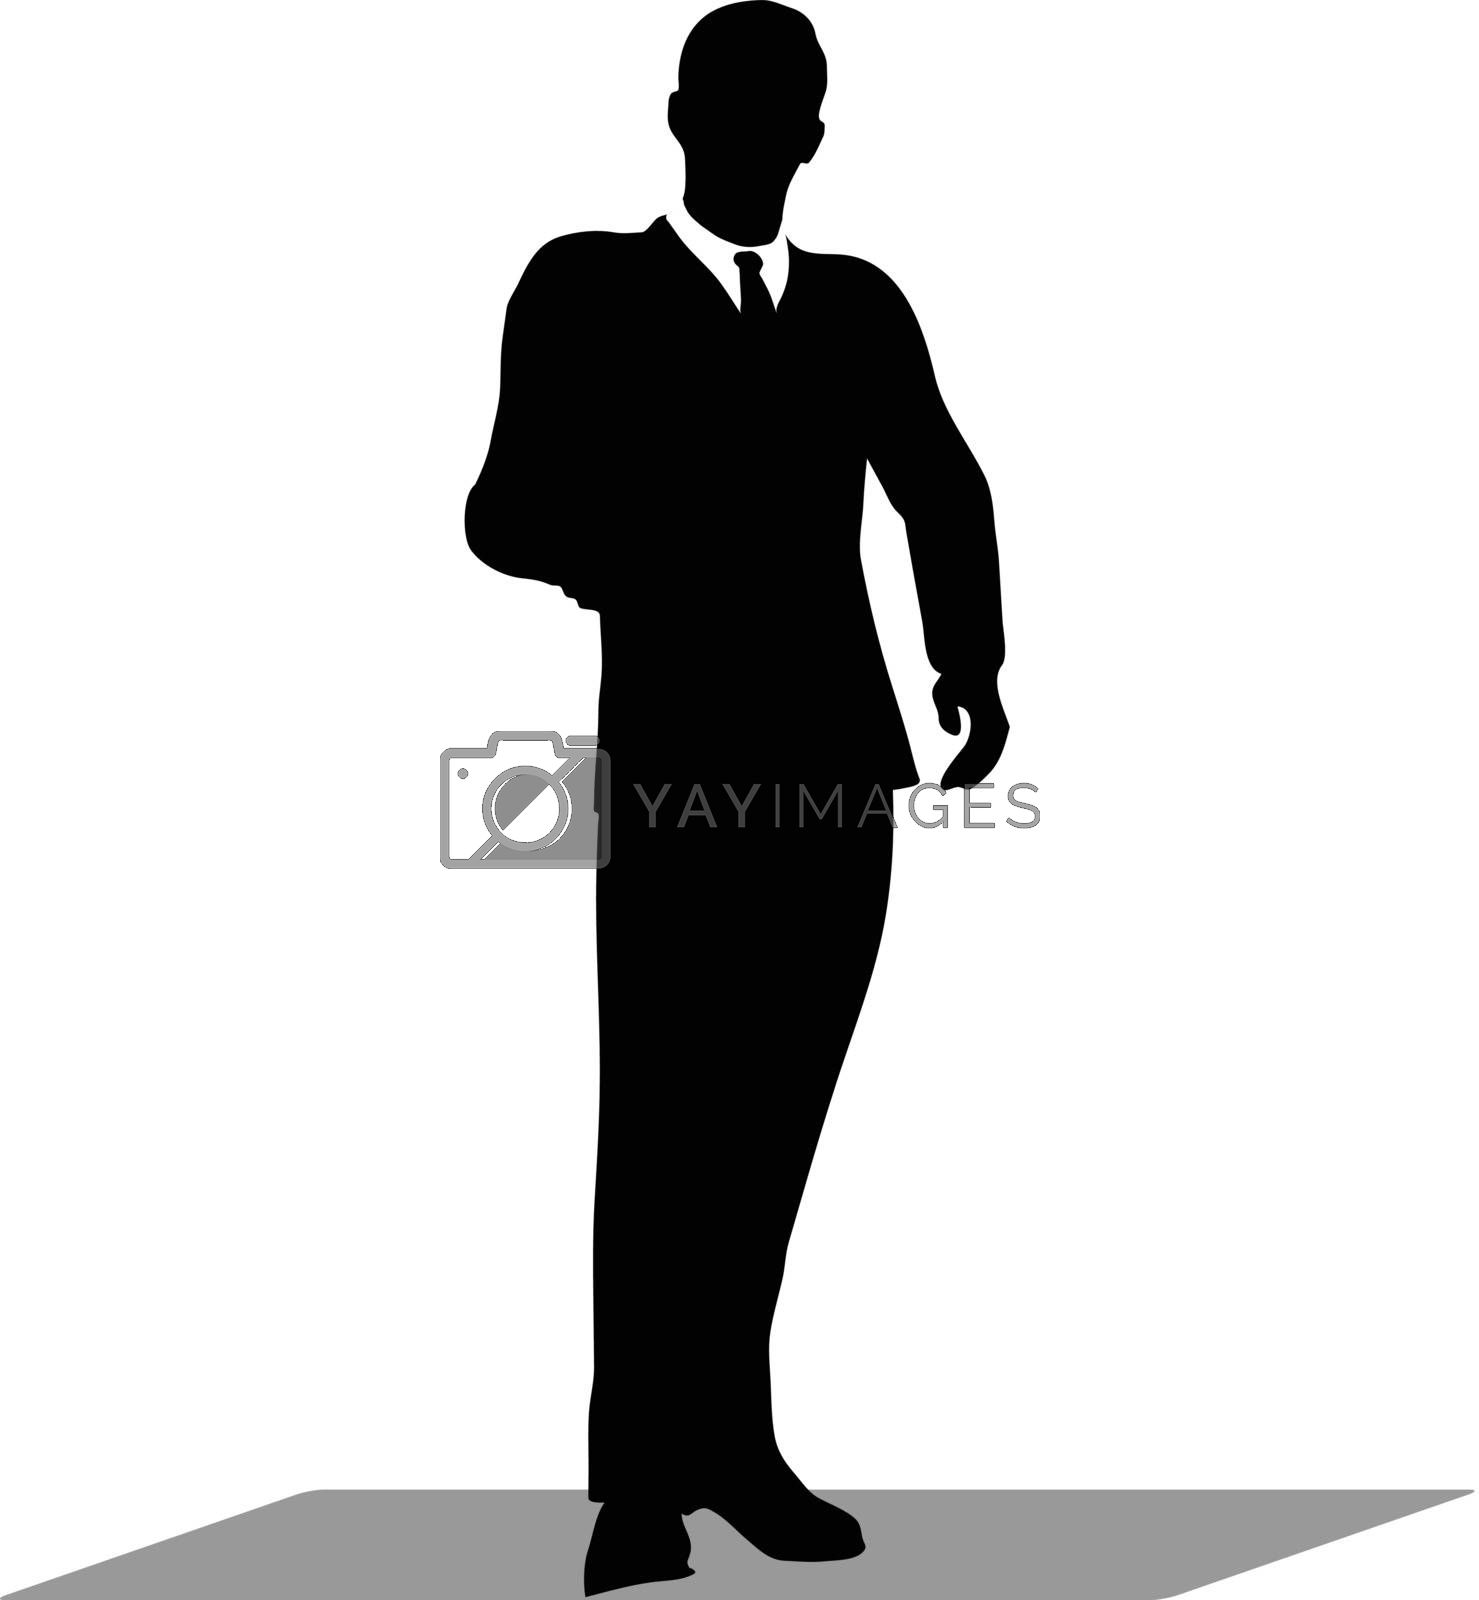 Royalty free image of business handshake silhouette by Istanbul2009